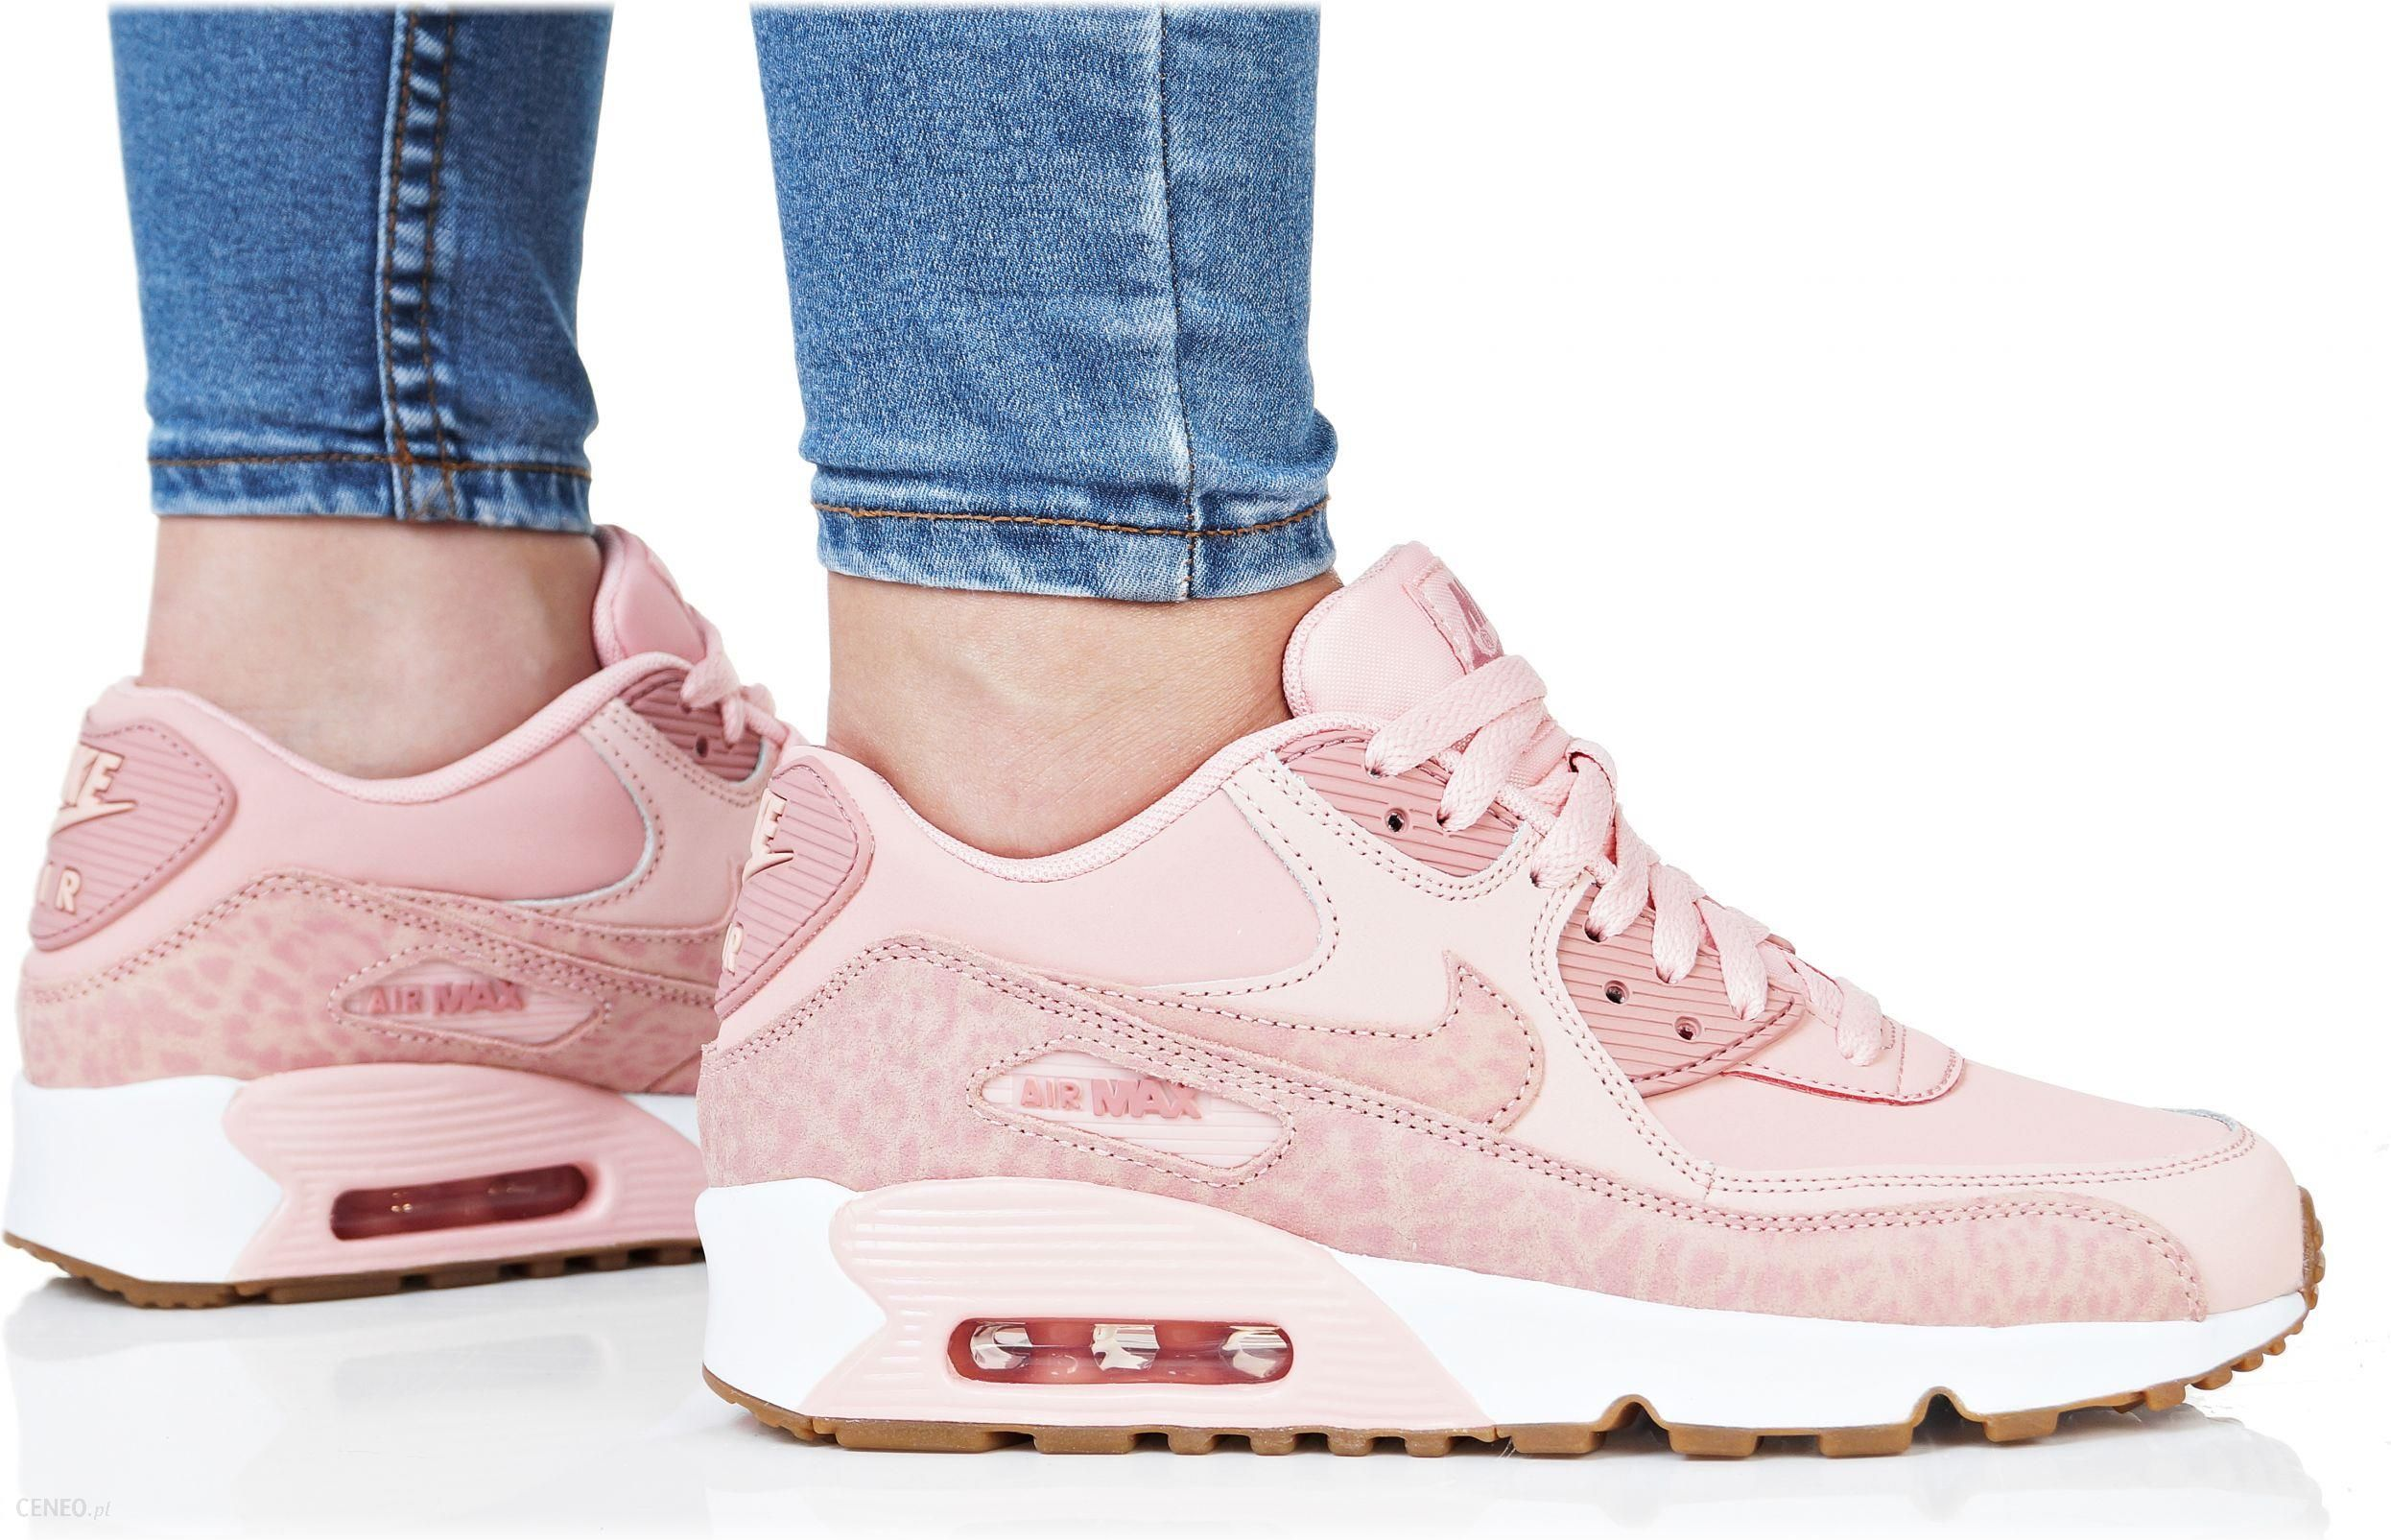 Nike Air Max 90 LTR SE GG 897987 004 szary Ceny i opinie